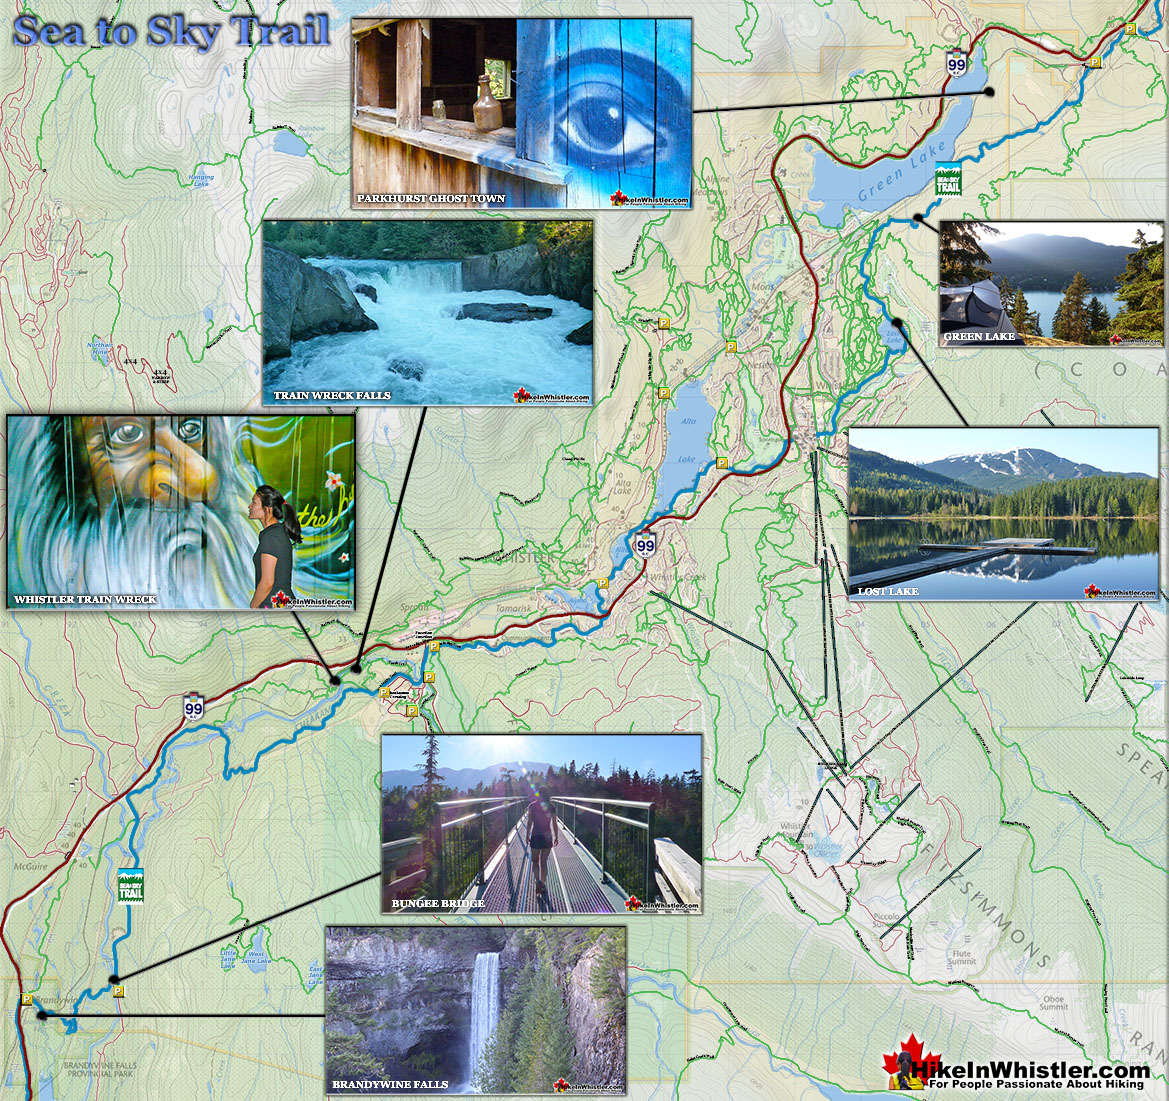 Sea to Sky Trail Map - Hike in Whistler